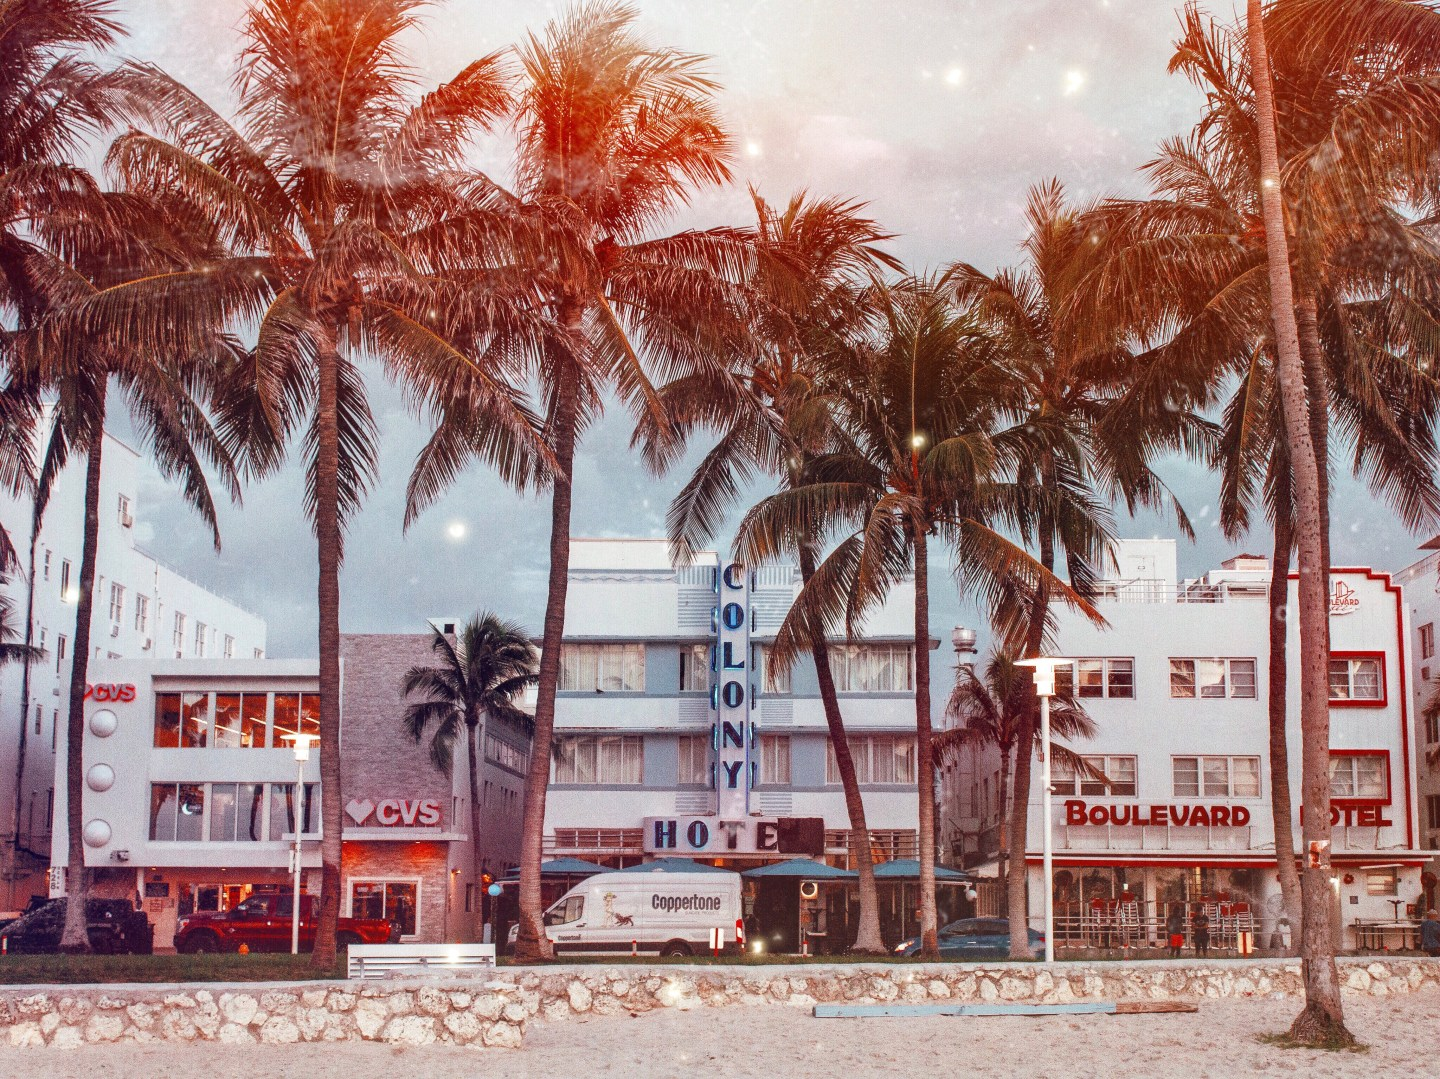 Illustrated by Sade - View of the Colony Hotel on Ocean Avenue, South Beach Miami